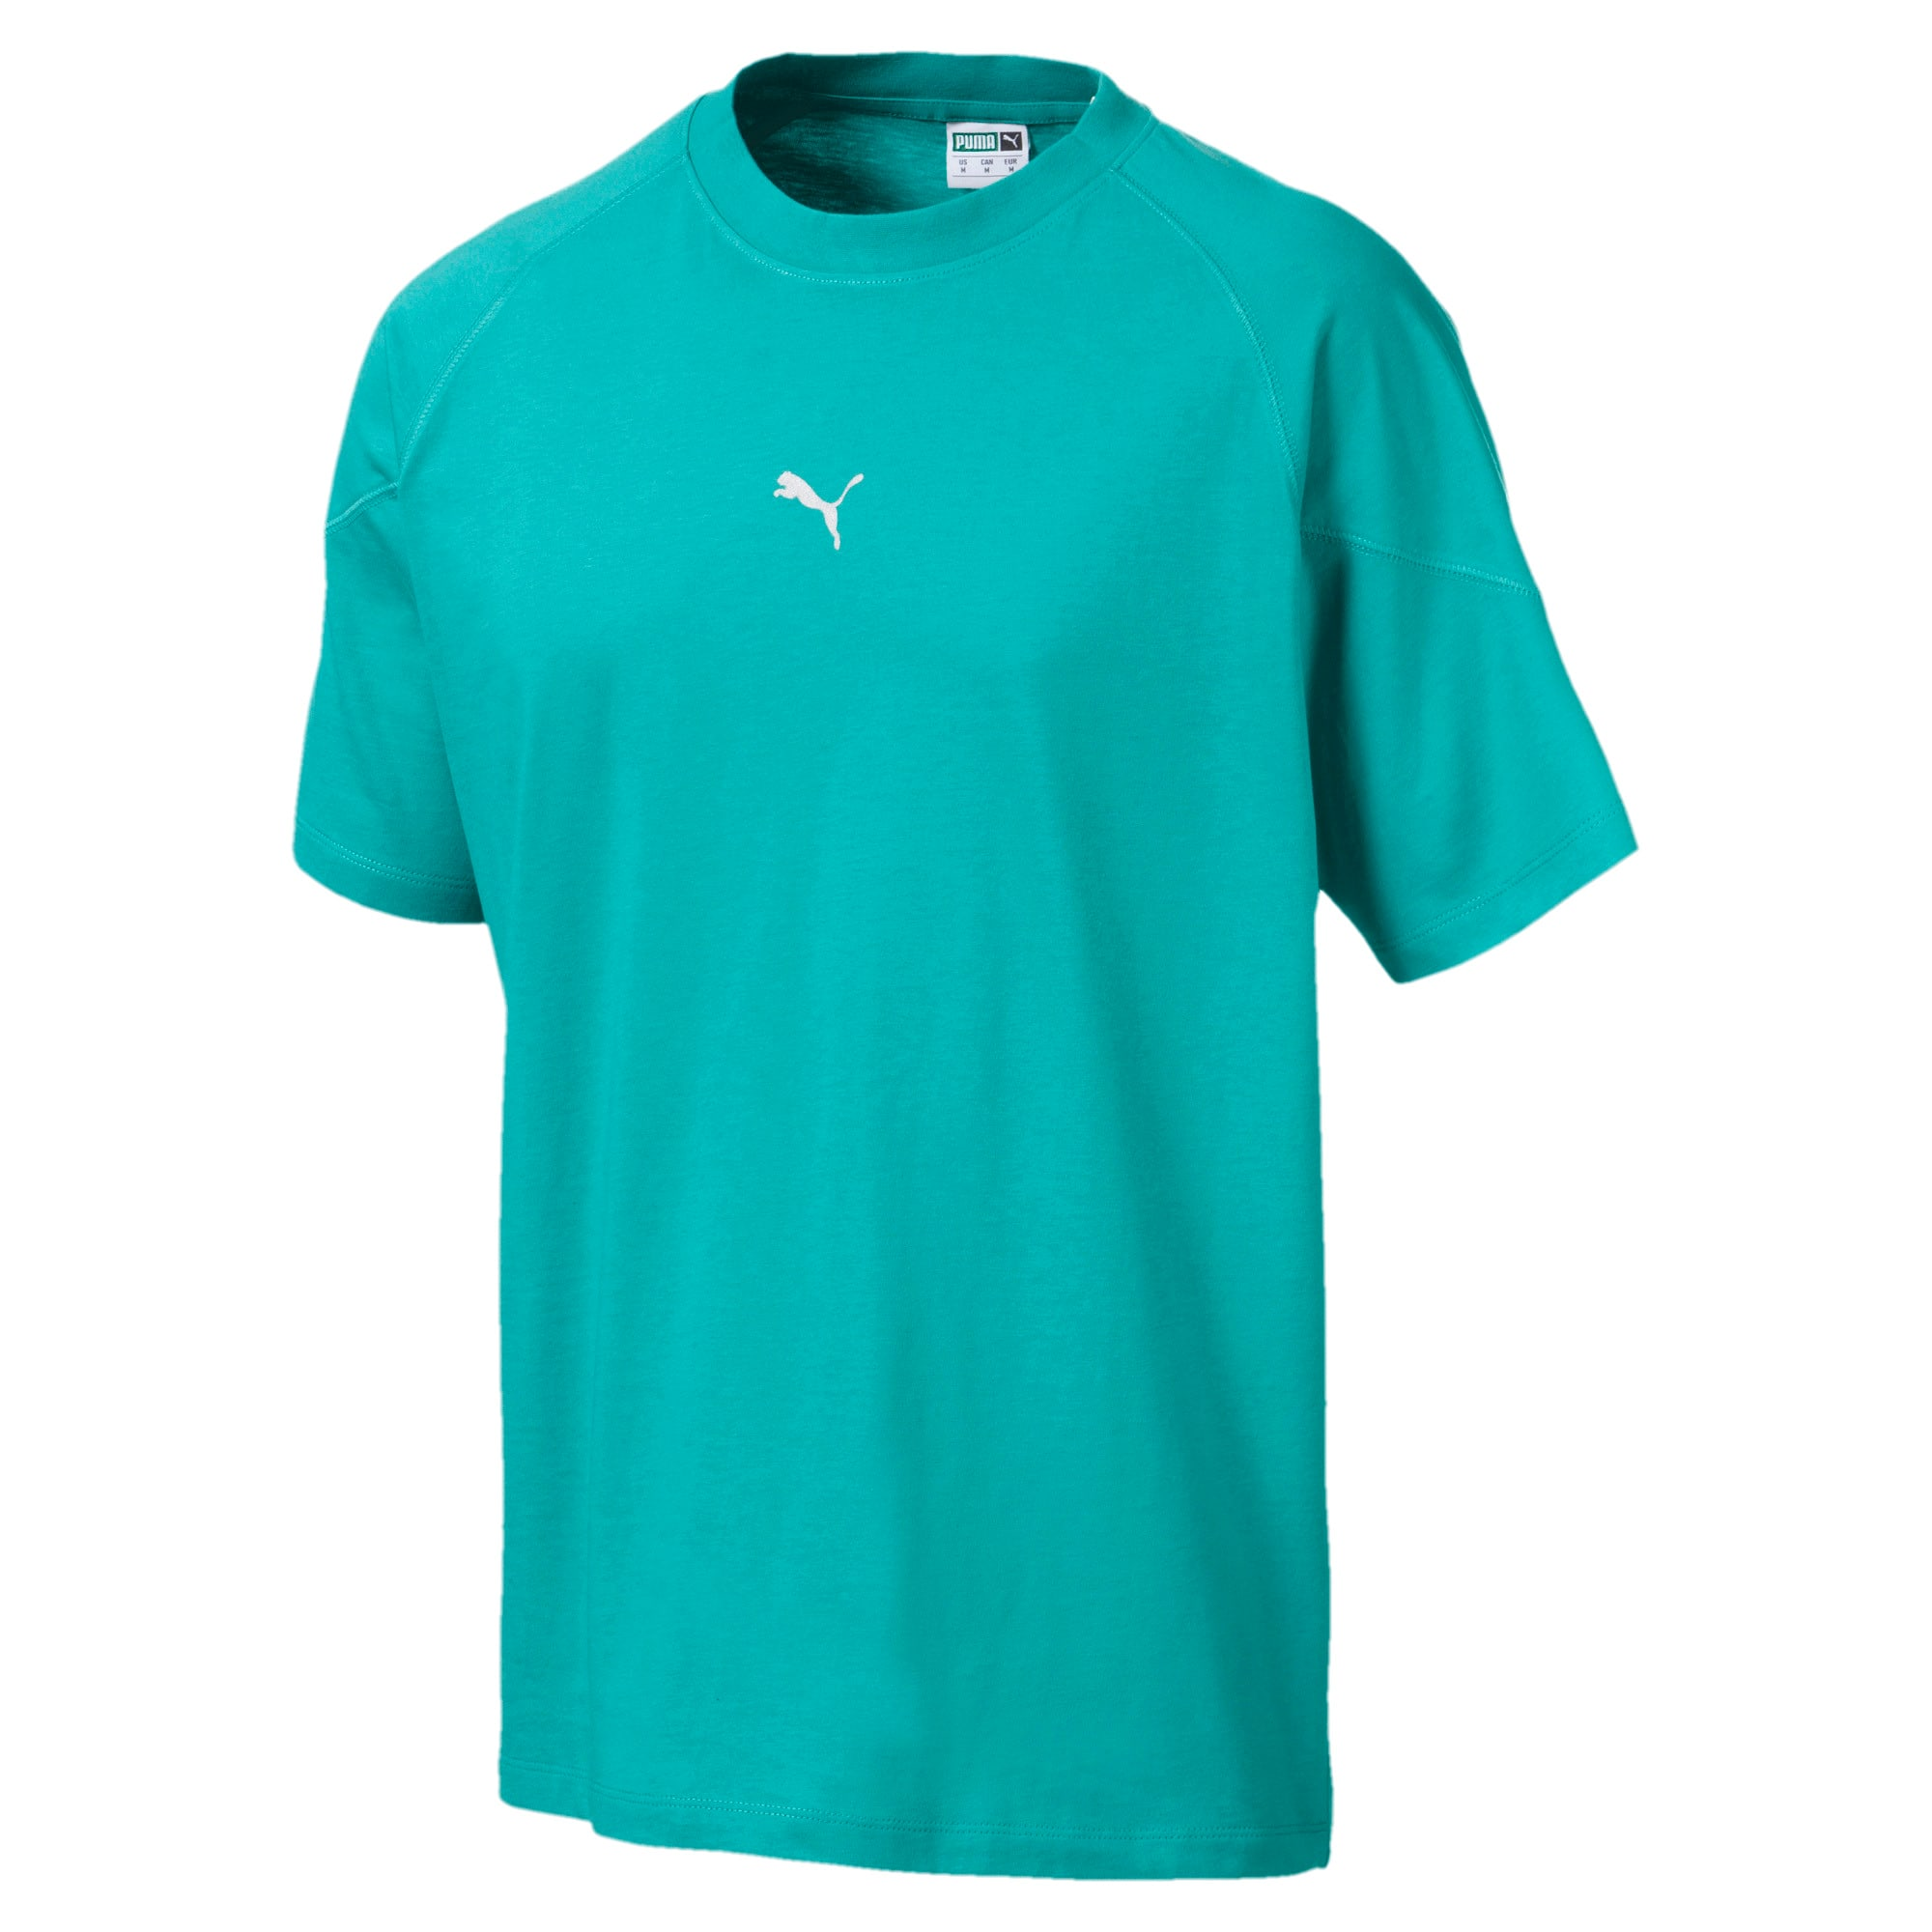 Thumbnail 1 of Epoch Men's Tee, Blue Turquoise, medium